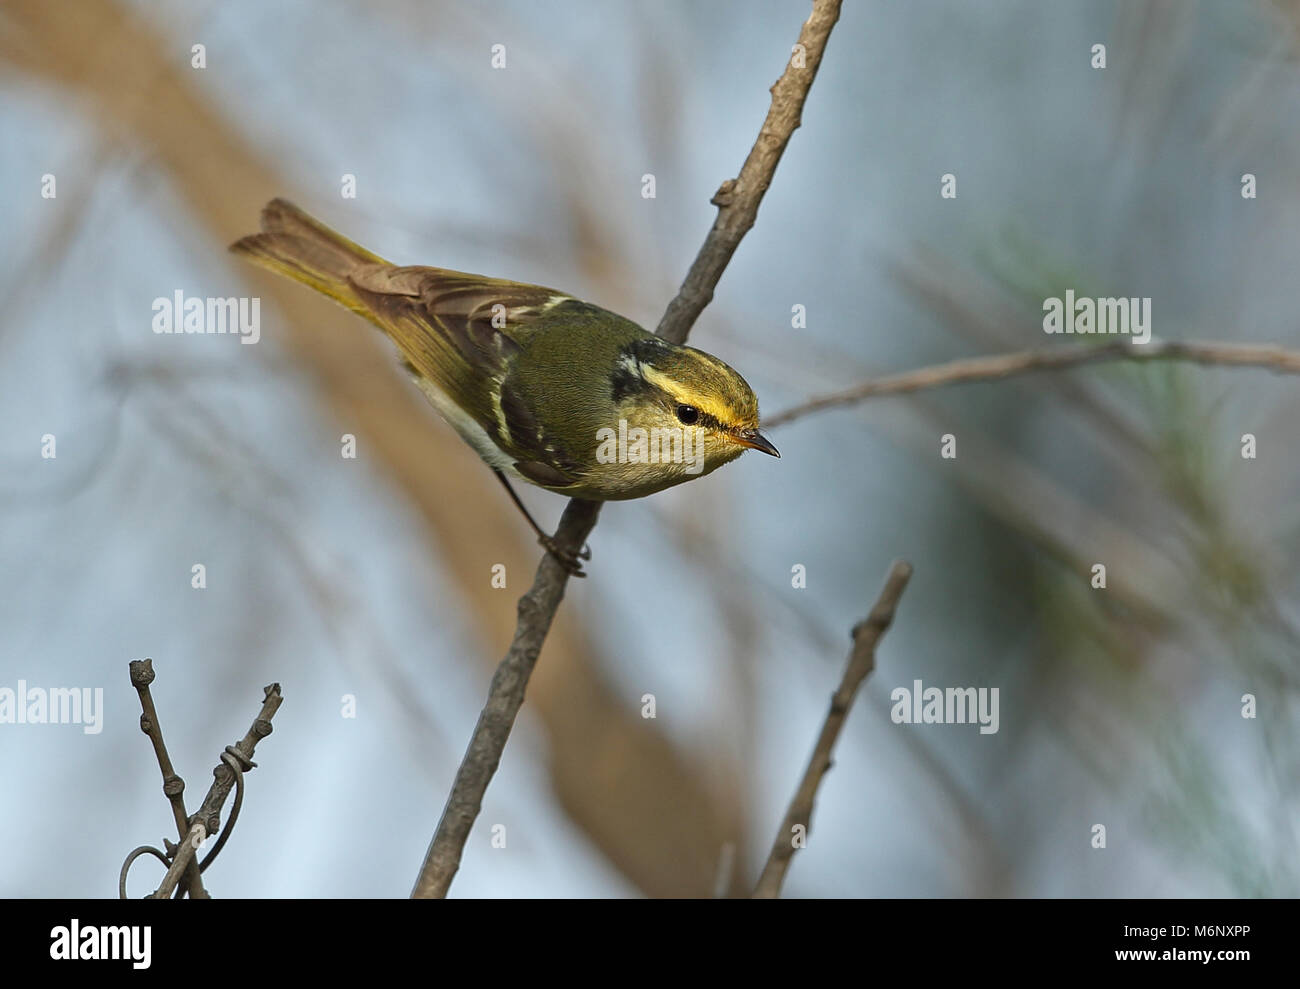 Pallas's Warbler (Phylloscopus proregulus) adult perched on twig  Hebei, China       May Stock Photo